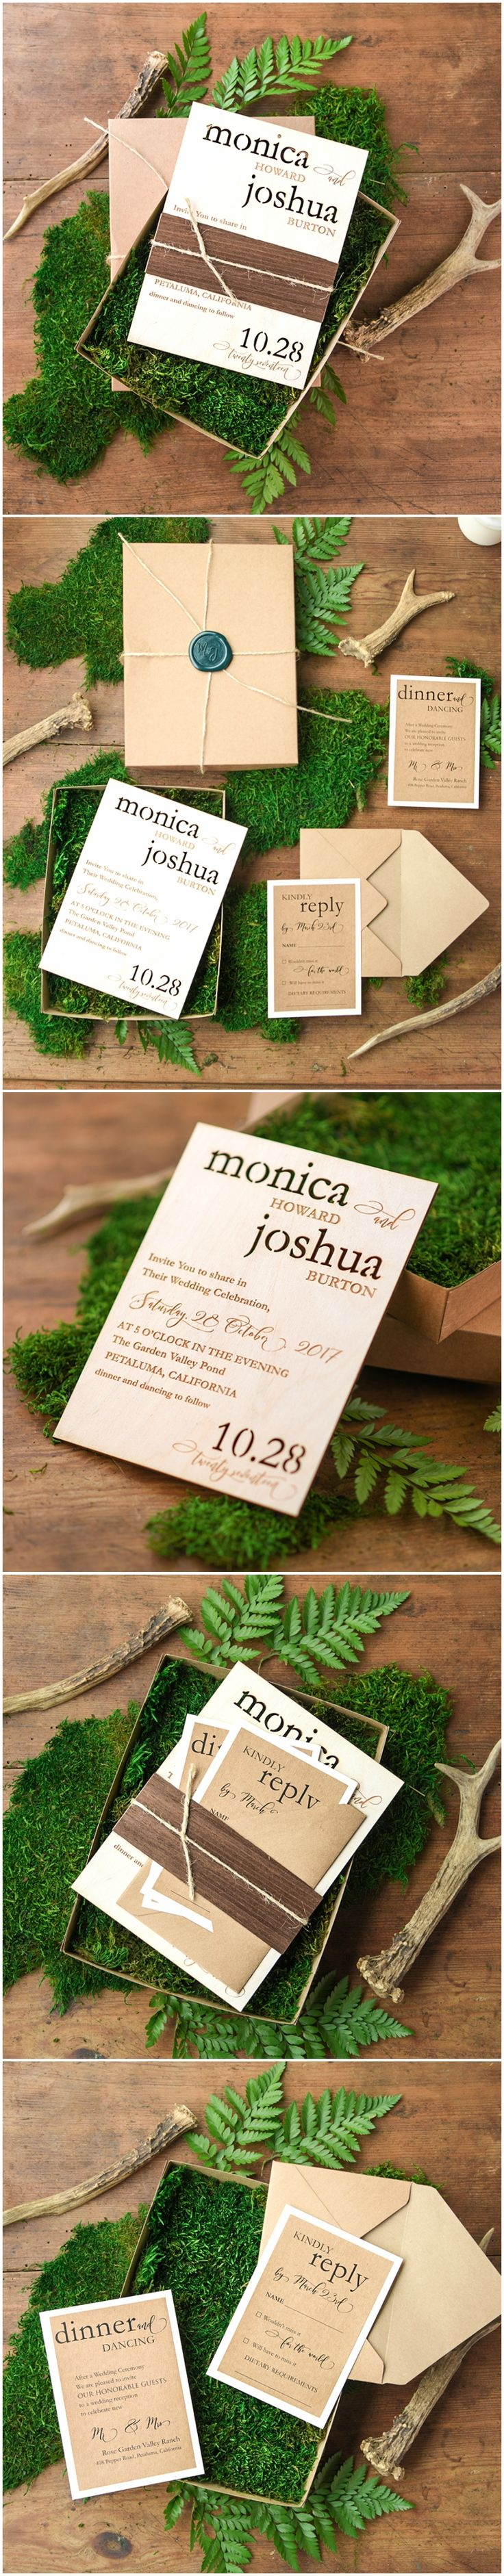 how to get directions for wedding invitations%0A Wooden Wedding Invitations in a box  rustic wooden wedding